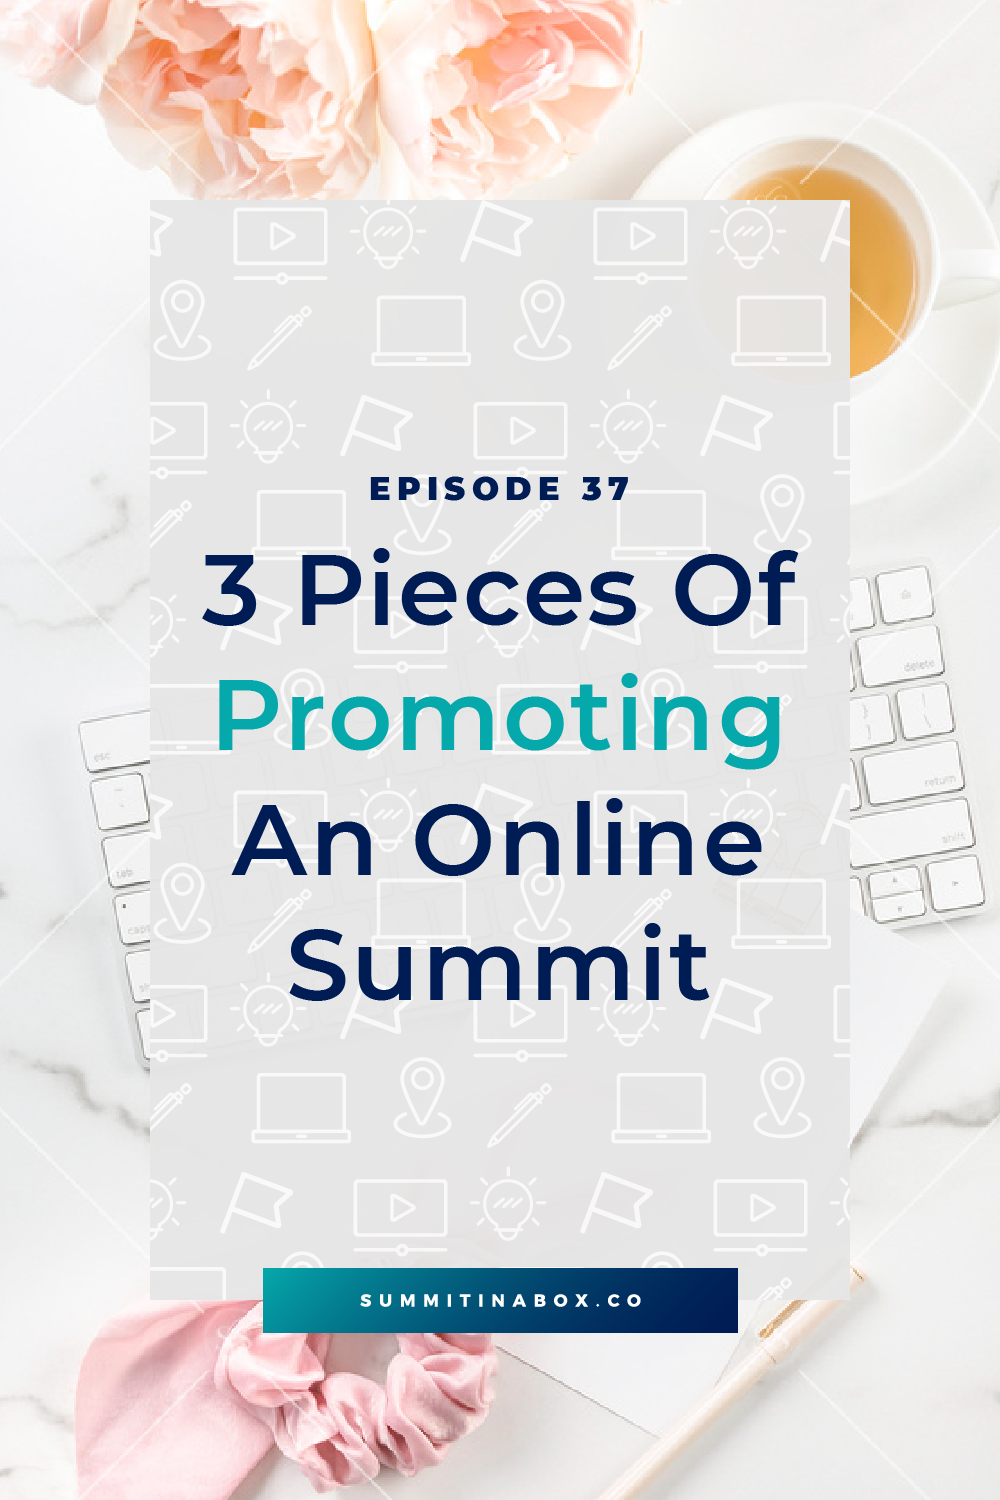 You've done the work of preparing your virtual event and now it's time to promote. Let's cover the 3 best ways to promote a virtual summit.